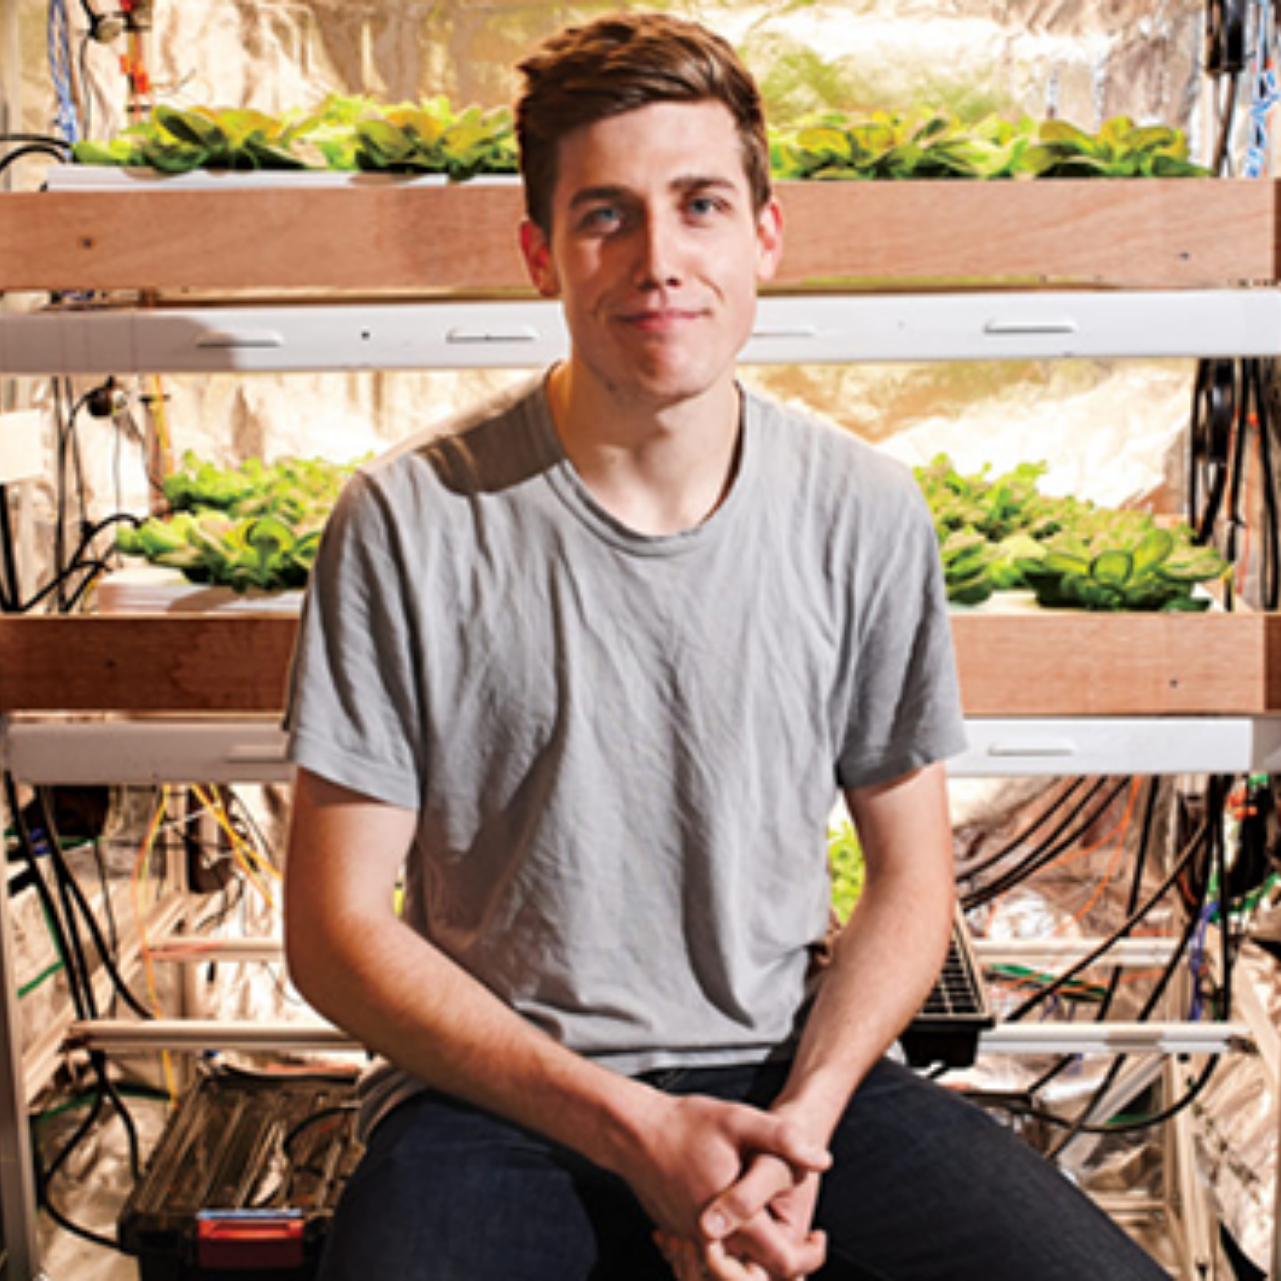 Andrew Shearer, Founder and CEO of Farmshelf